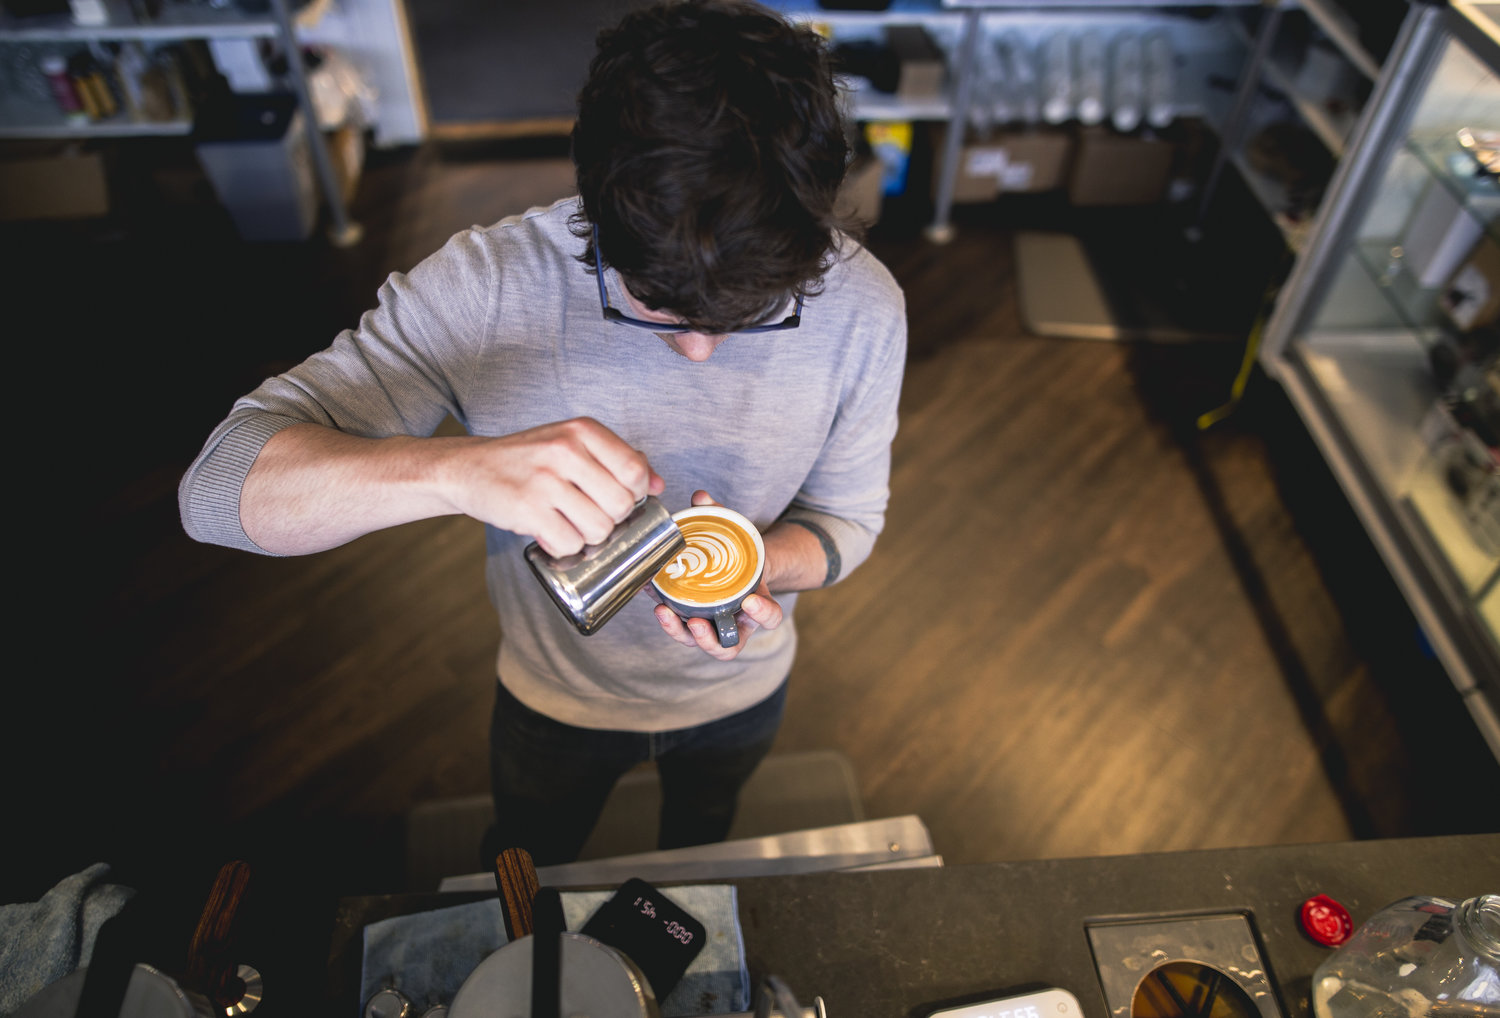 Photo from Coma Coffee